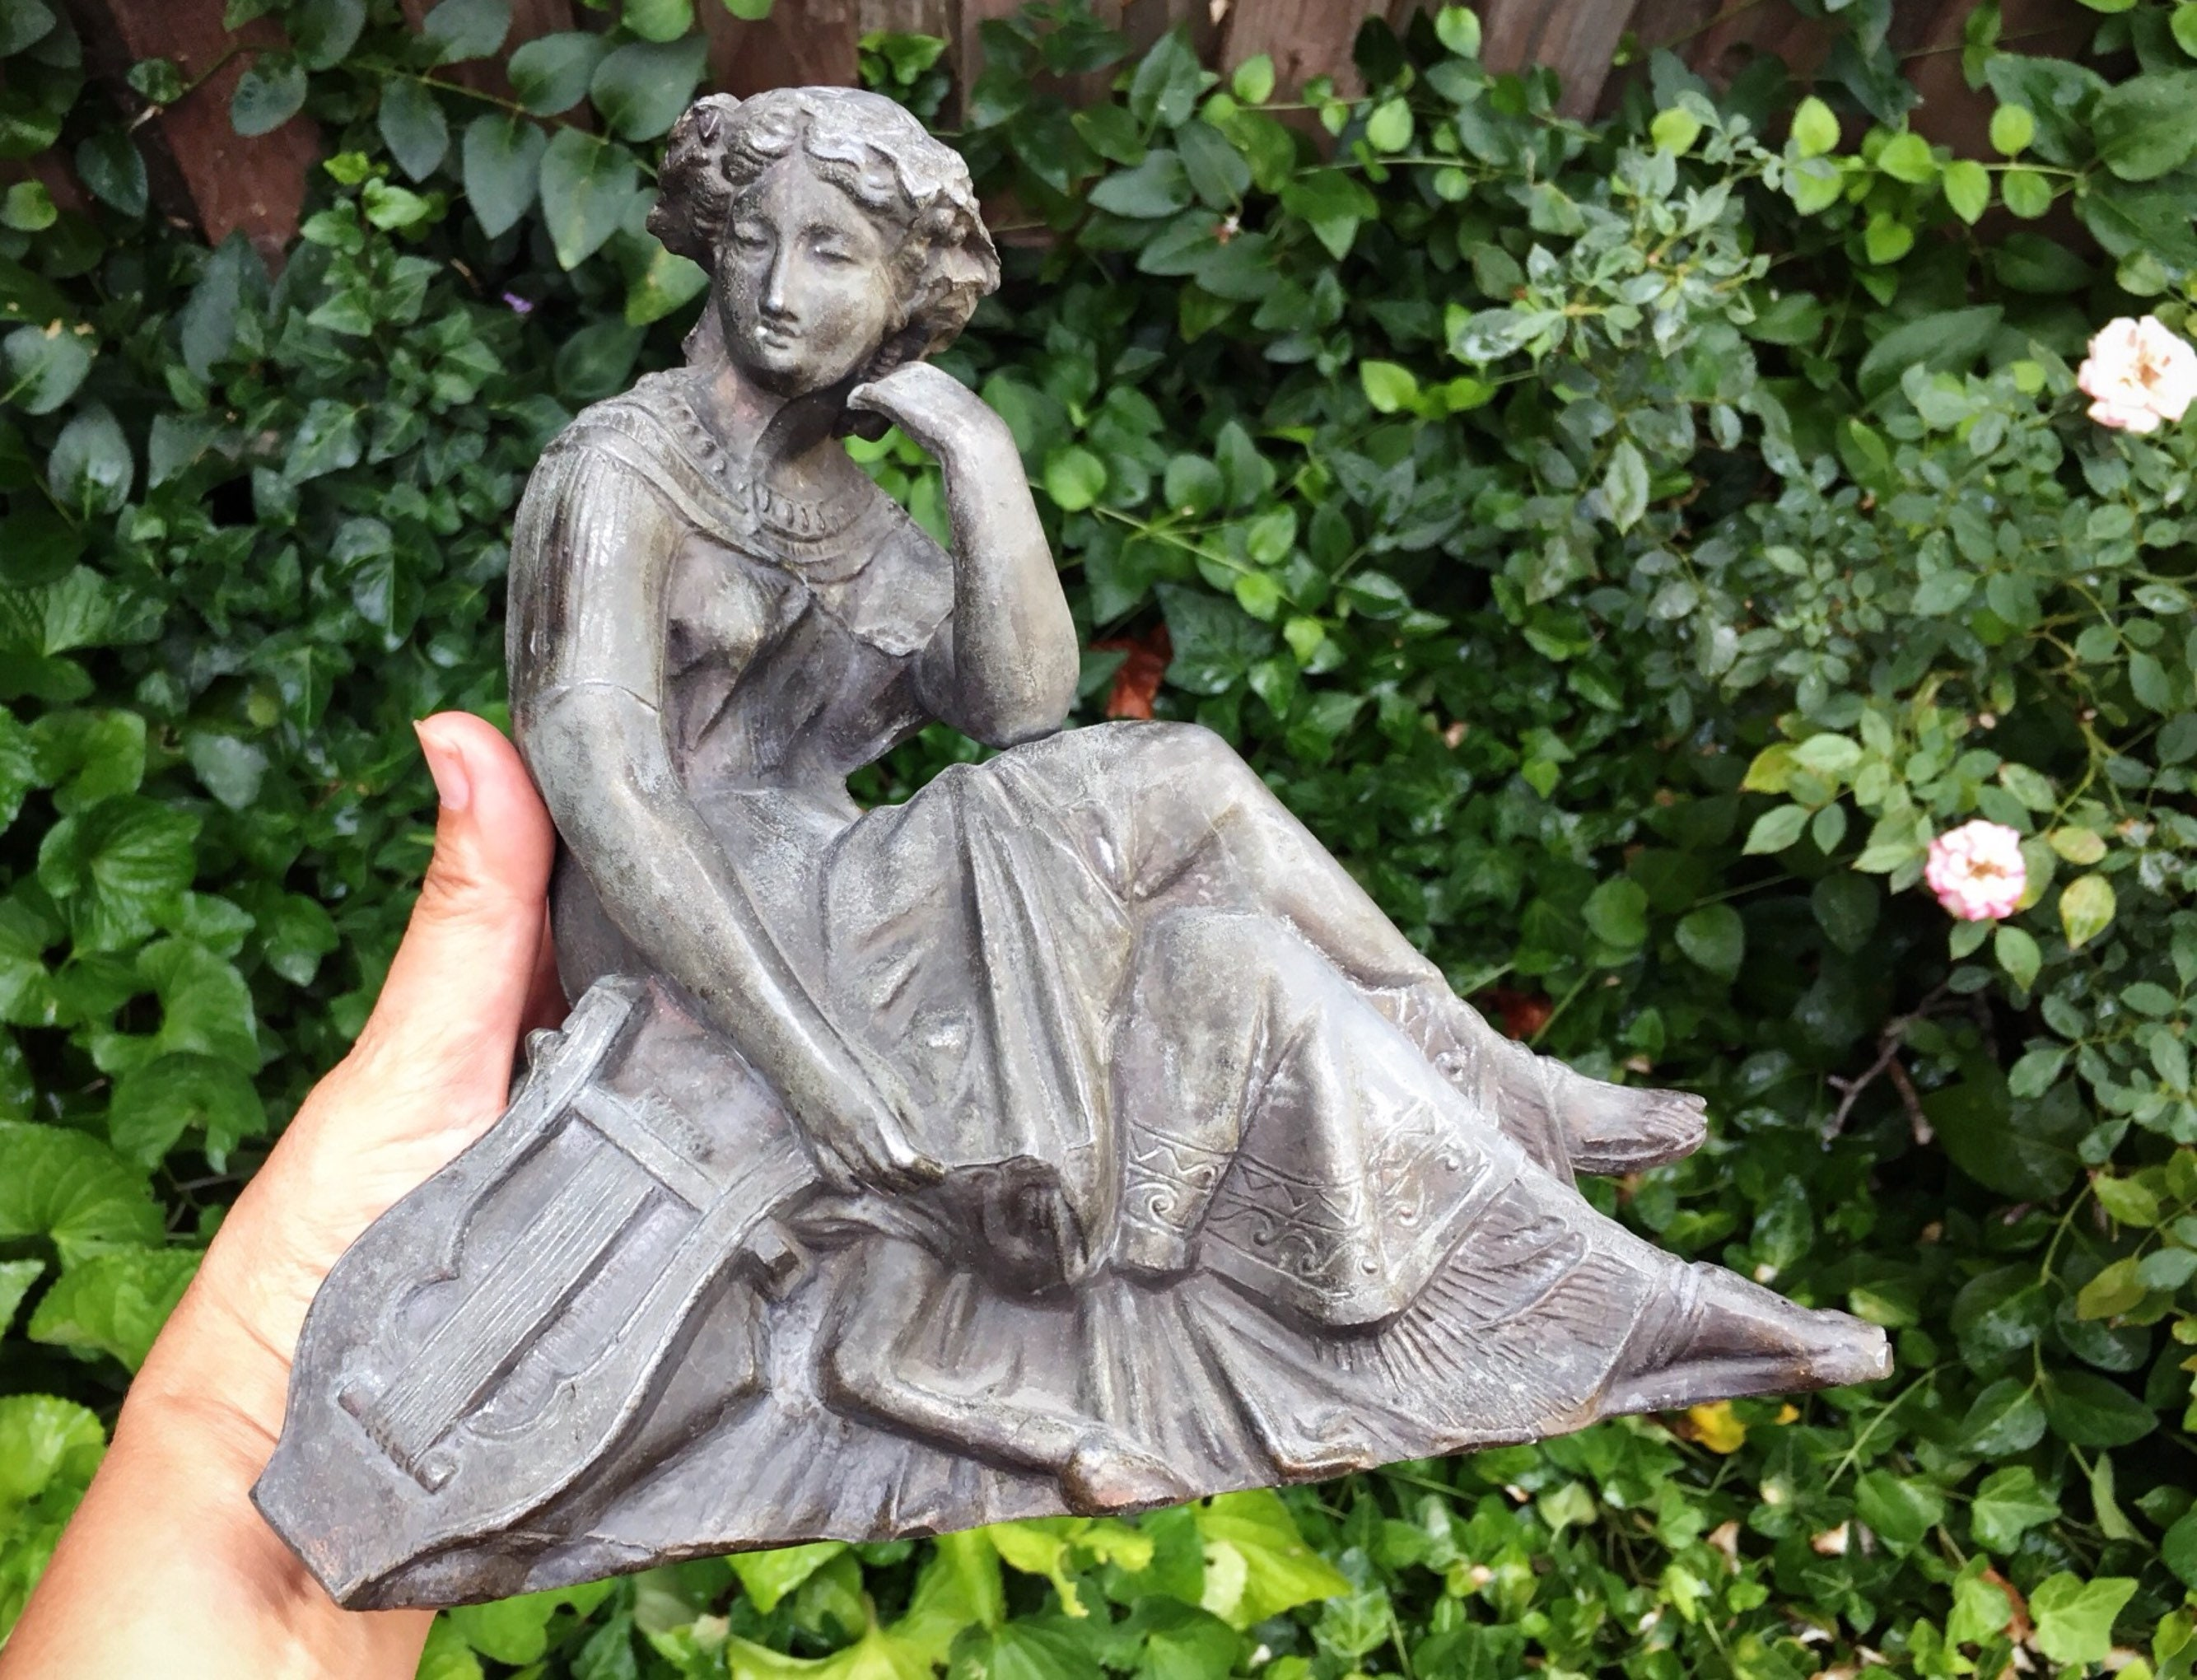 Cast Metal Vintage Lady Garden Decor Art Noveau Style, Garden Art, Outdoor  Statues, Rustic Garden Statuary, Rustic Decor, Vintage Gifts